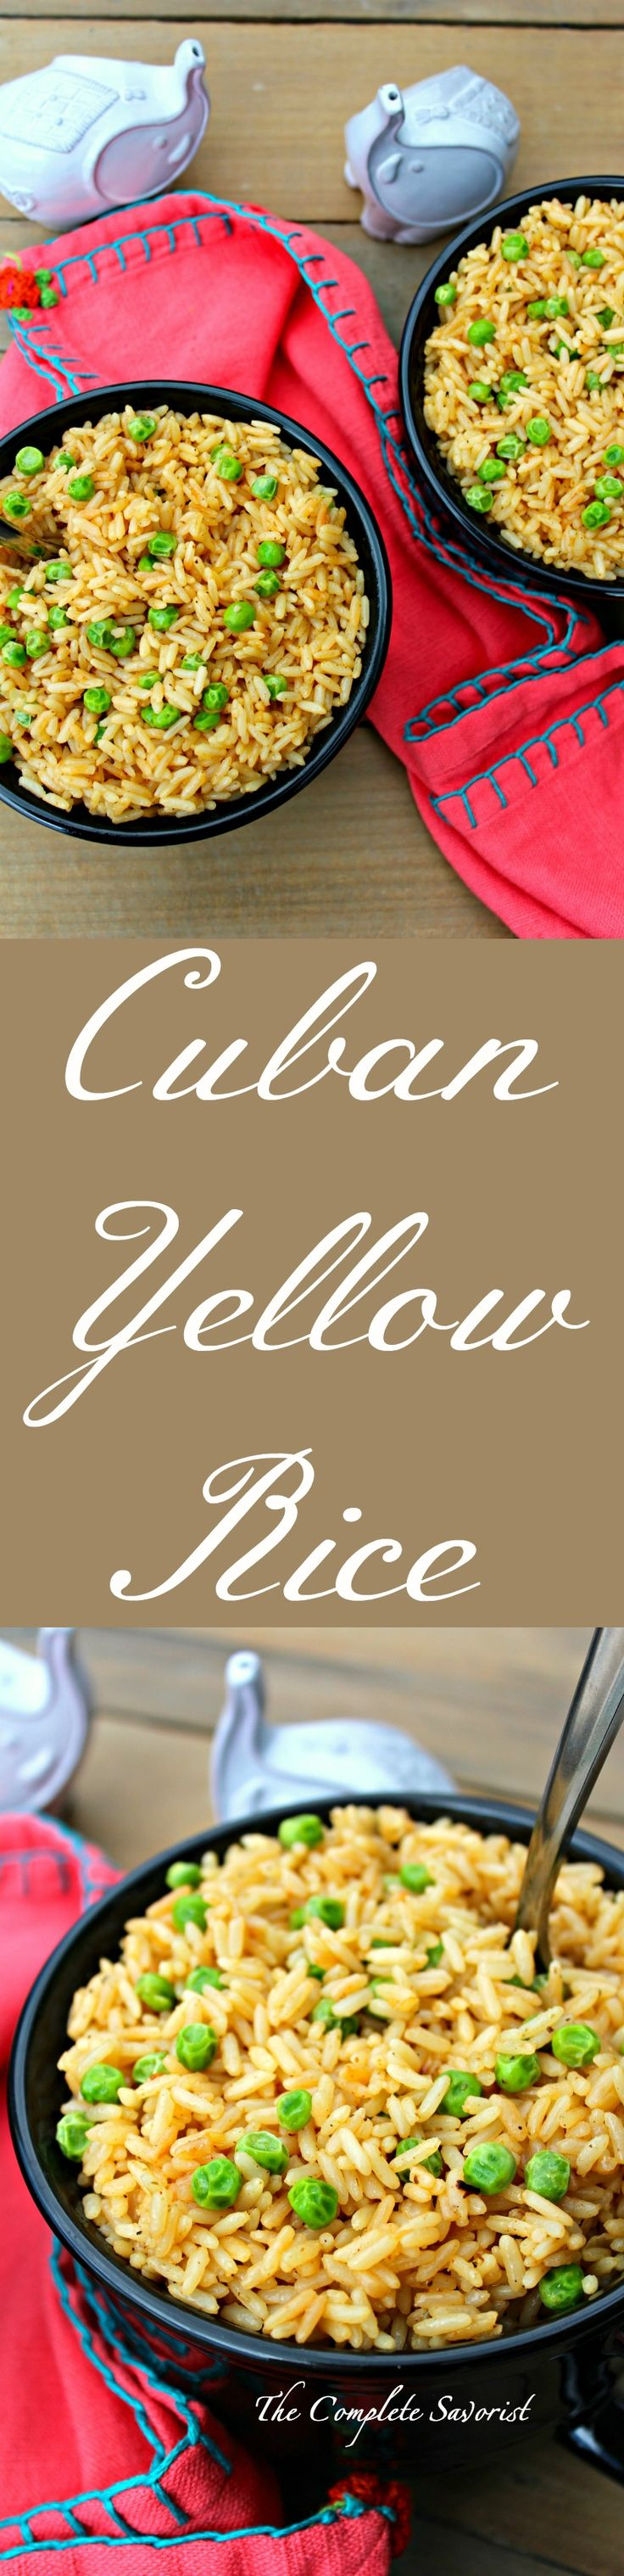 Cuban Yellow Rice ~ Cuban style rice with sautéed onions, herbs, spices including saffron, and fluffed with peas ~ The Complete Savorist